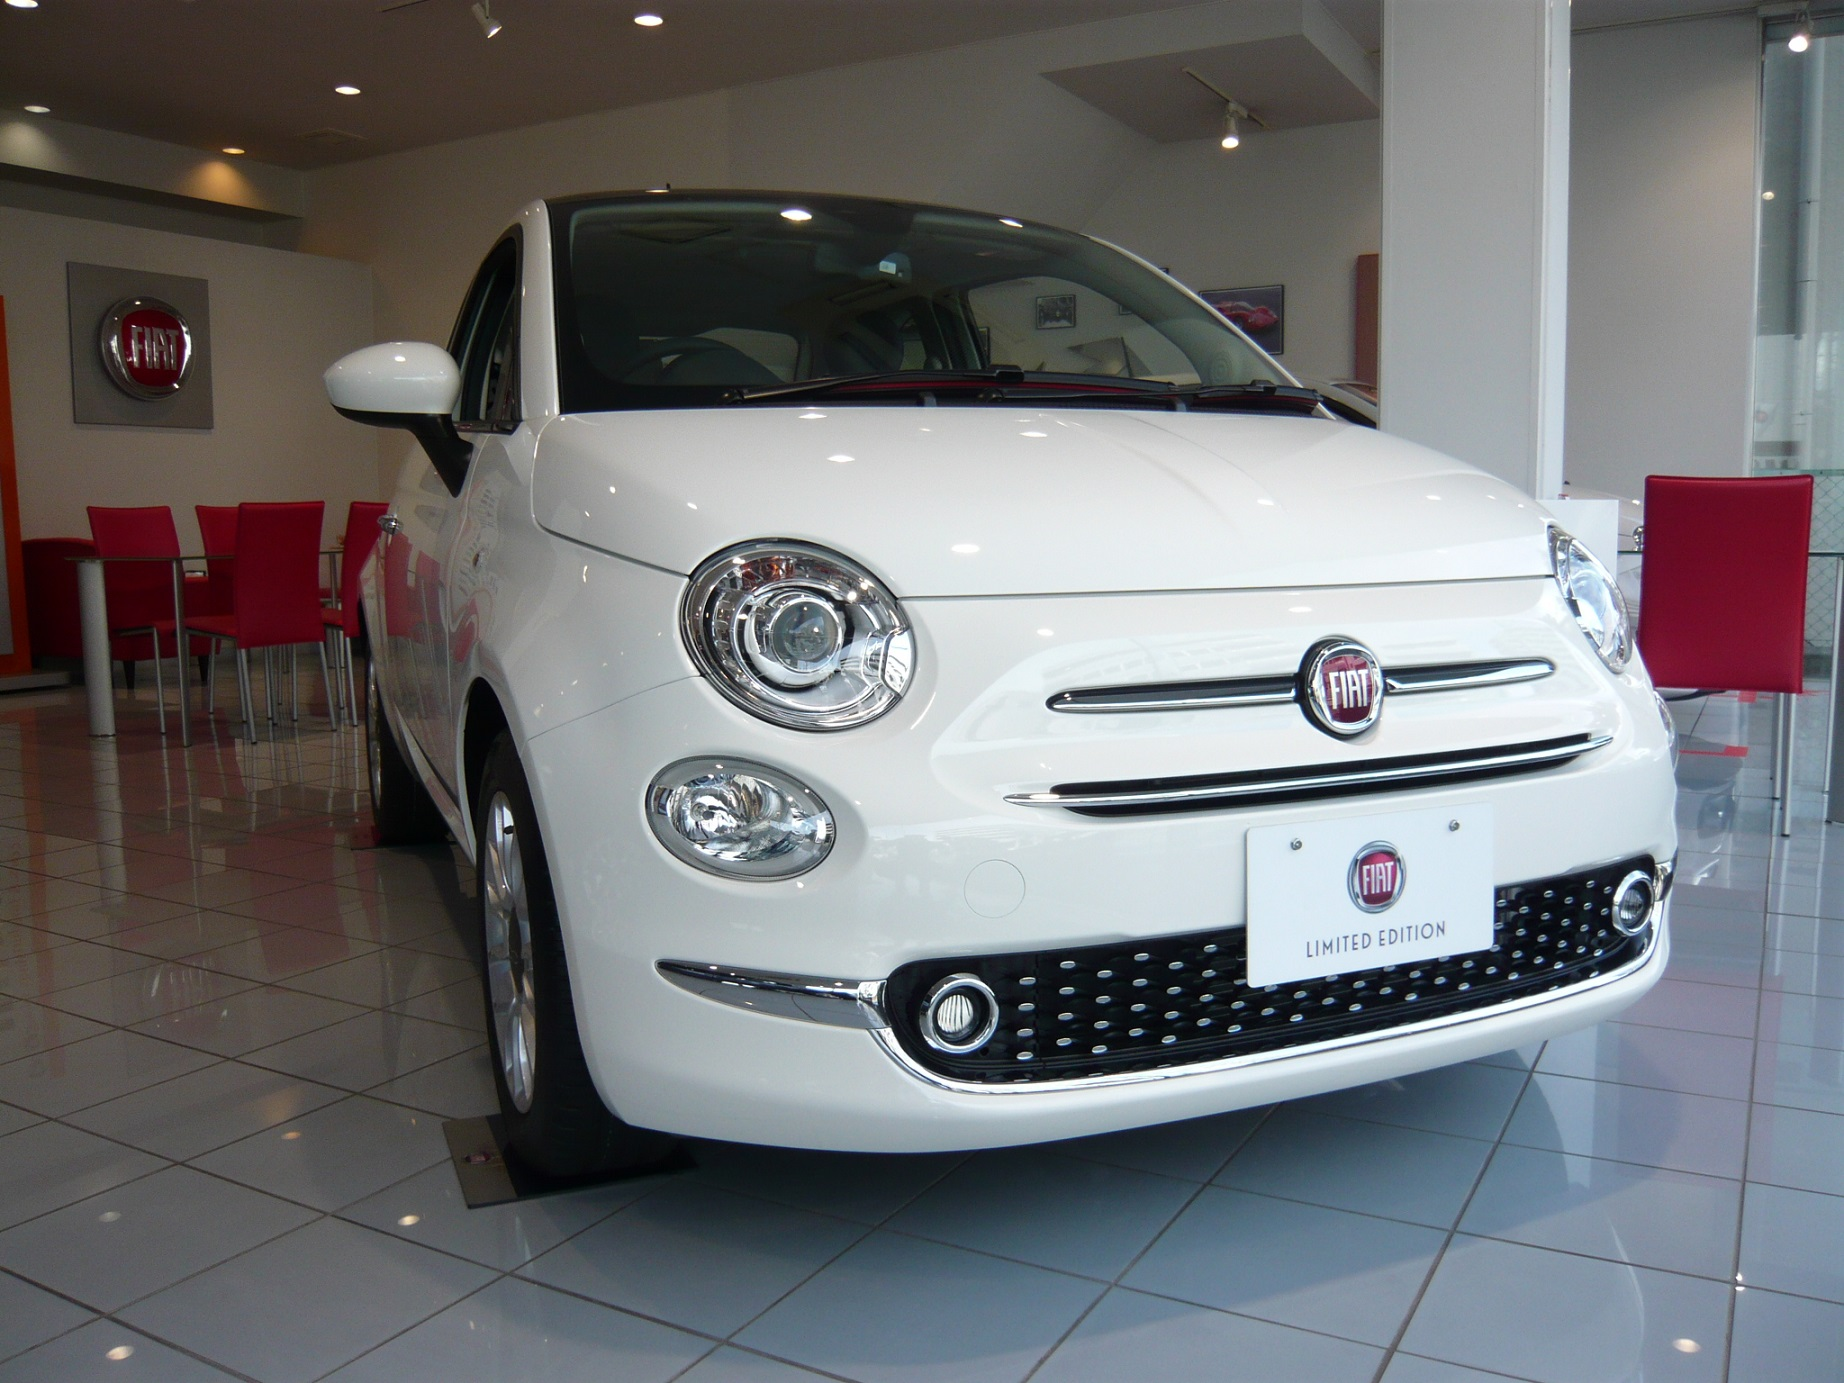 FIAT 500 限定車がショールームにPIT IN !!